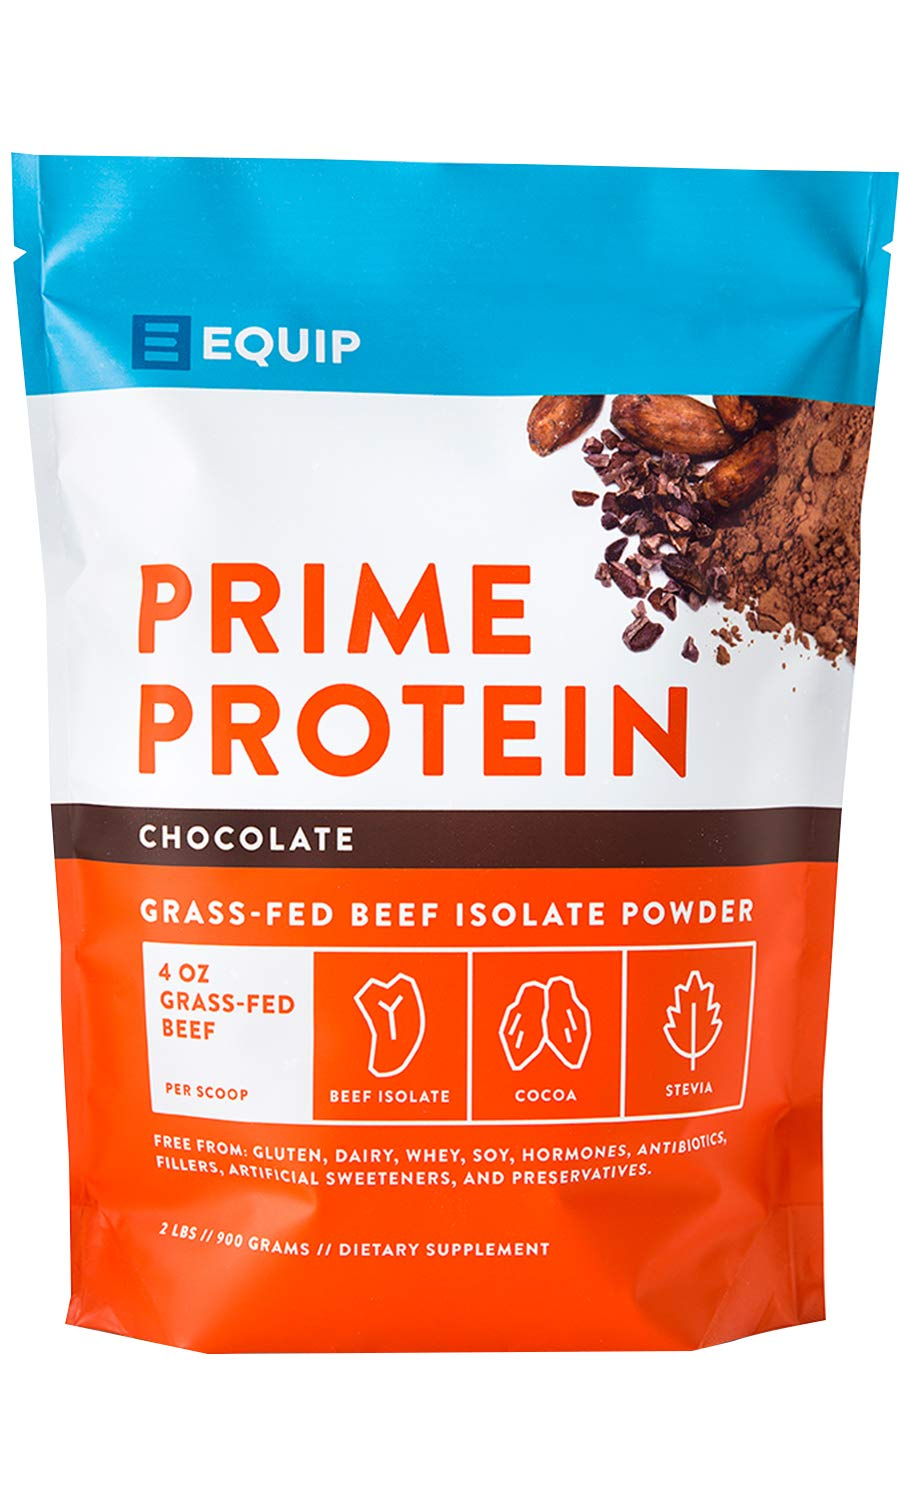 Beef Paleo Protein Powder: Keto Collagen Low Carb Ketogenic Diet Supplement Vital for Caveman & Carnivore Nutrition of Ancient Source. Best as Gelatin Muscle Meat Proteins Drink (Chocolate) by Equip